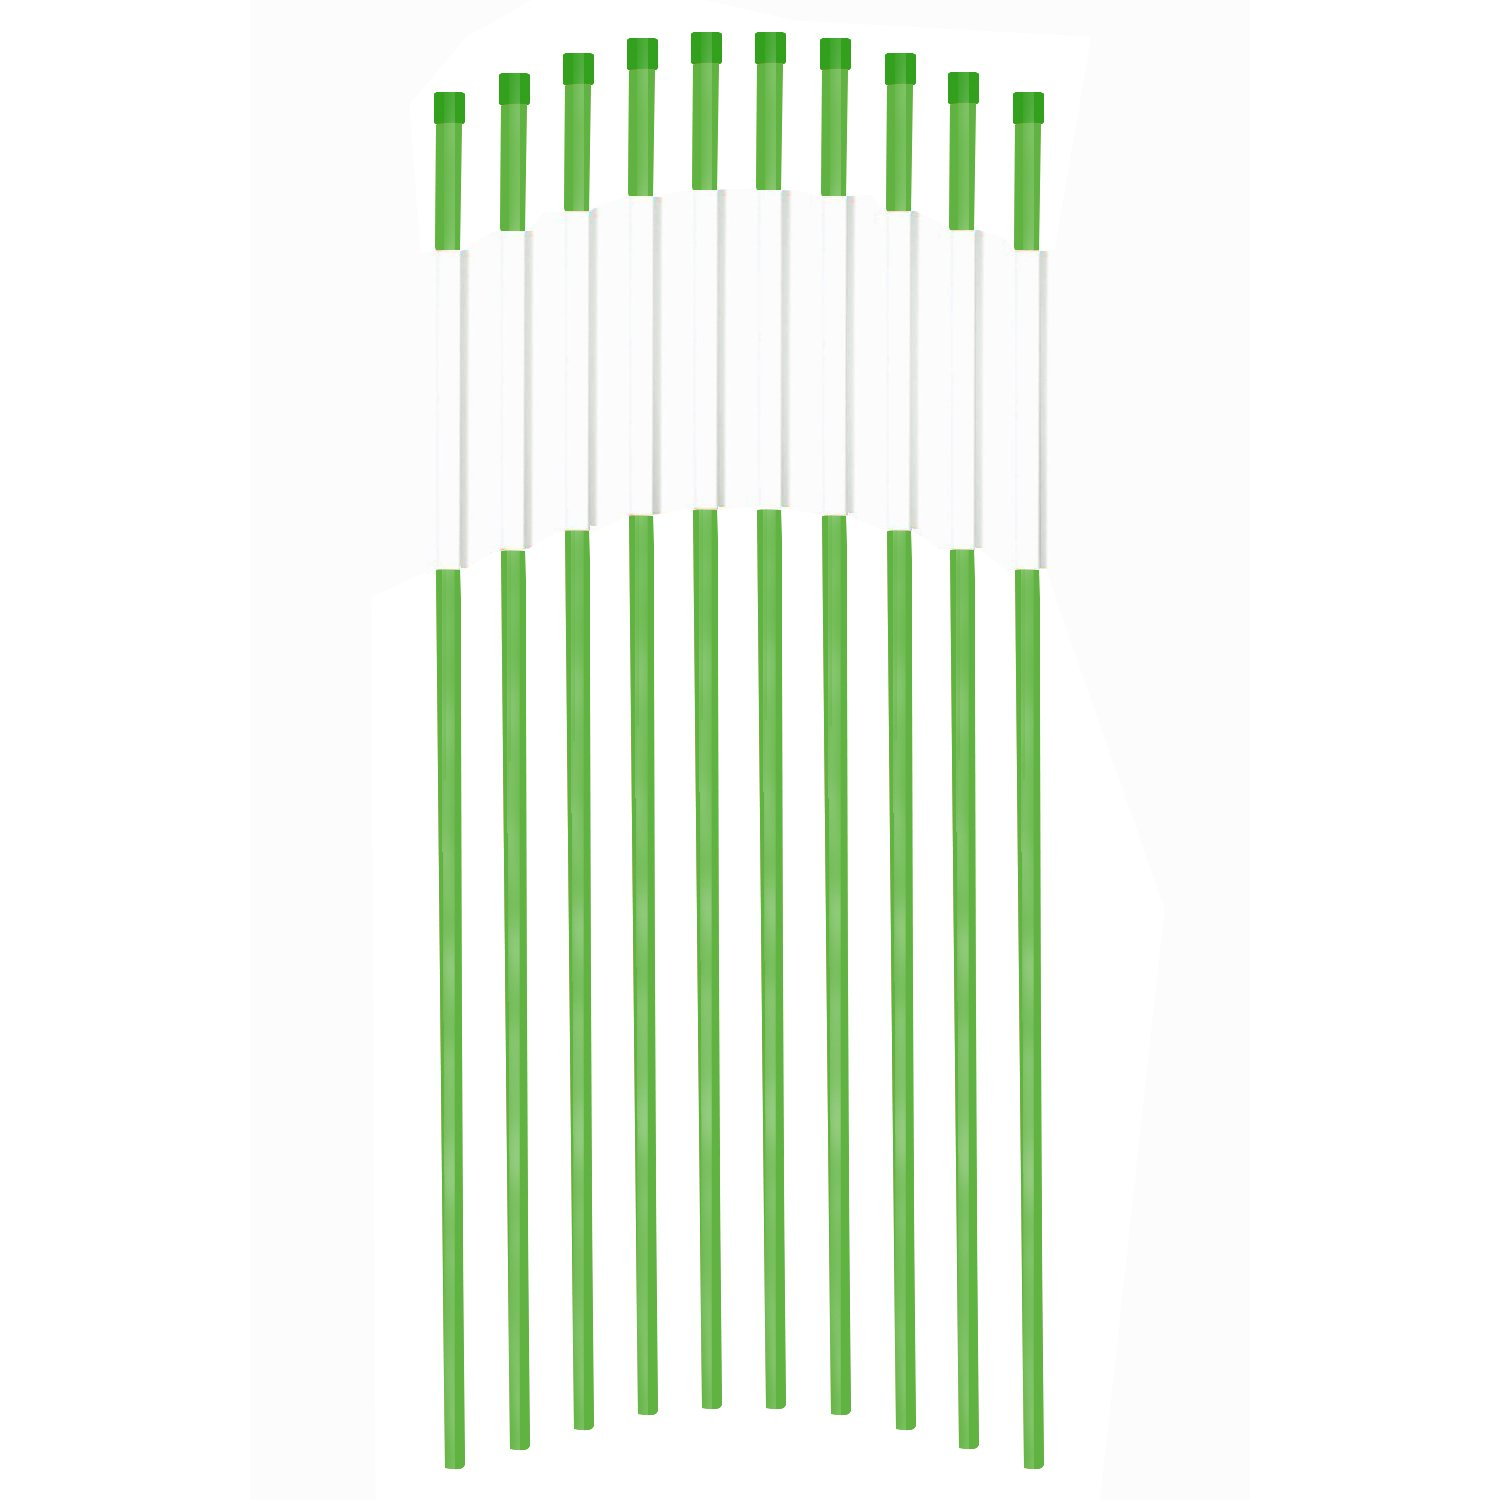 Fibermarker 60Inch Reflective Driveway Markers 5/16Inch Green Solid Driveway Poles for Easy Visibility at Night (100) by FiberMarker